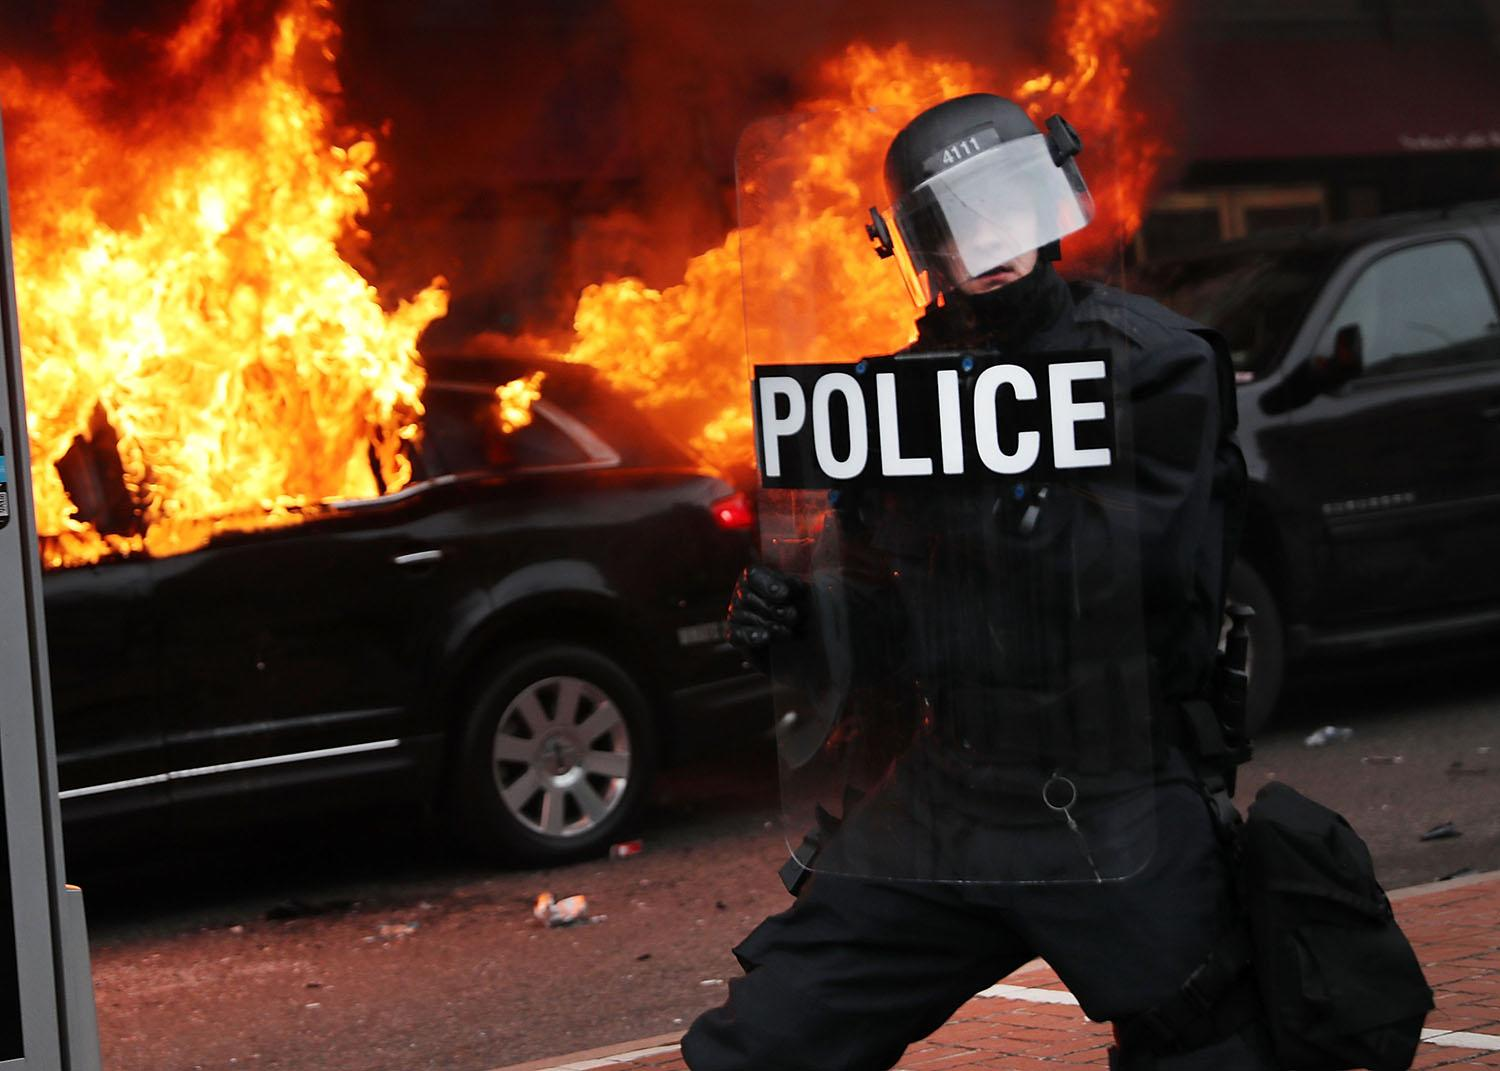 <p>Police and demonstrators clash in downtown Washington after a limo was set on fire following the inauguration of President Donald Trump on Jan. 20, 2017 in Washington, D.C. (Photo: Spencer Platt/Getty Images) </p>